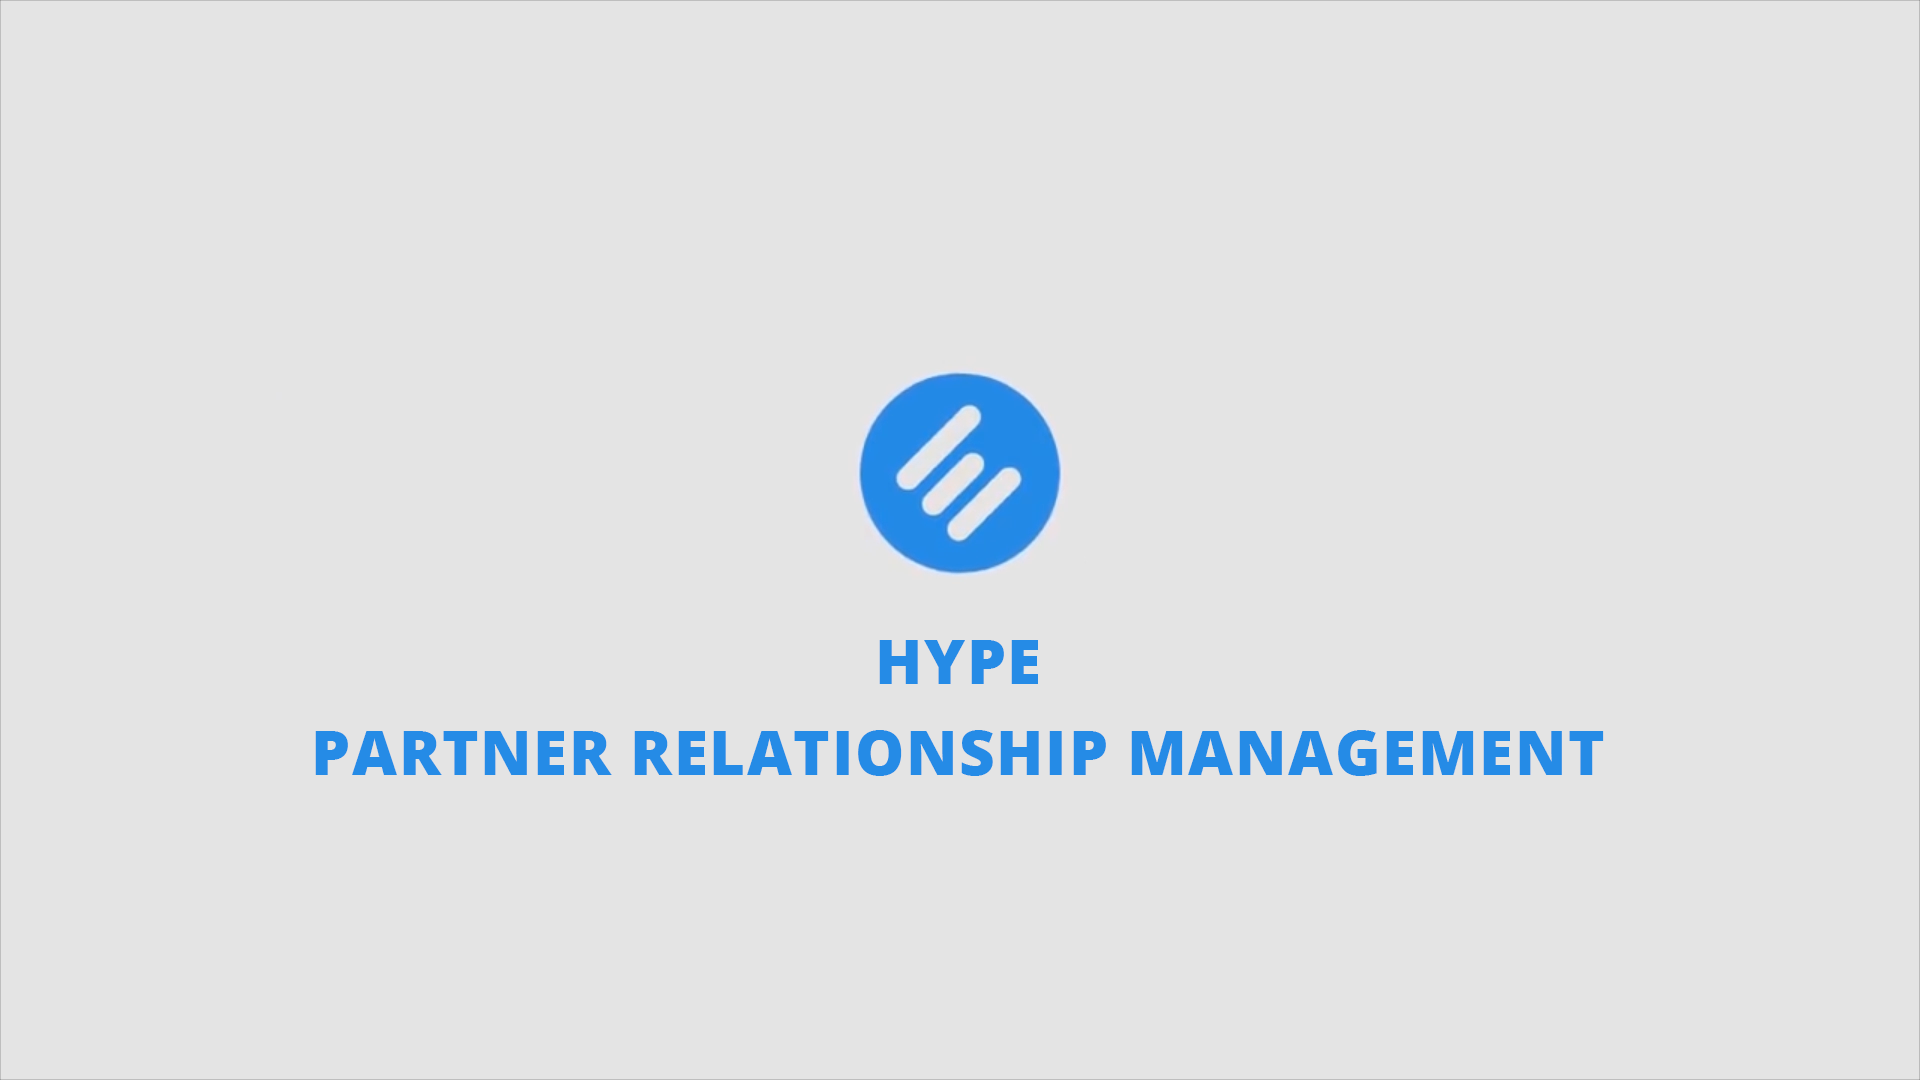 HYPE_Partner_Relationship_Management